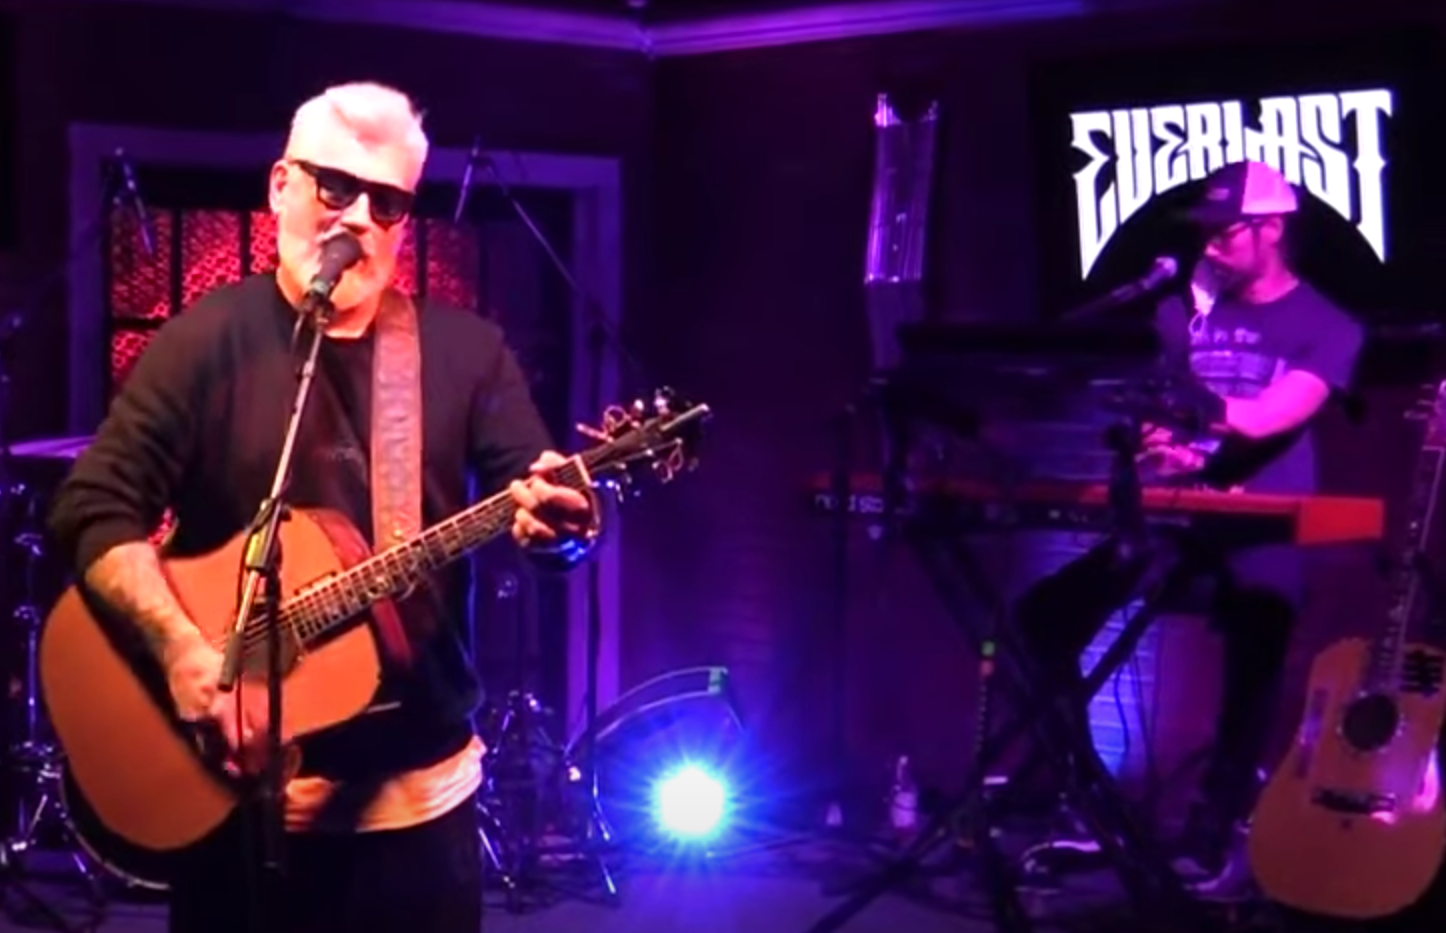 Everlast | The Live Acoustic